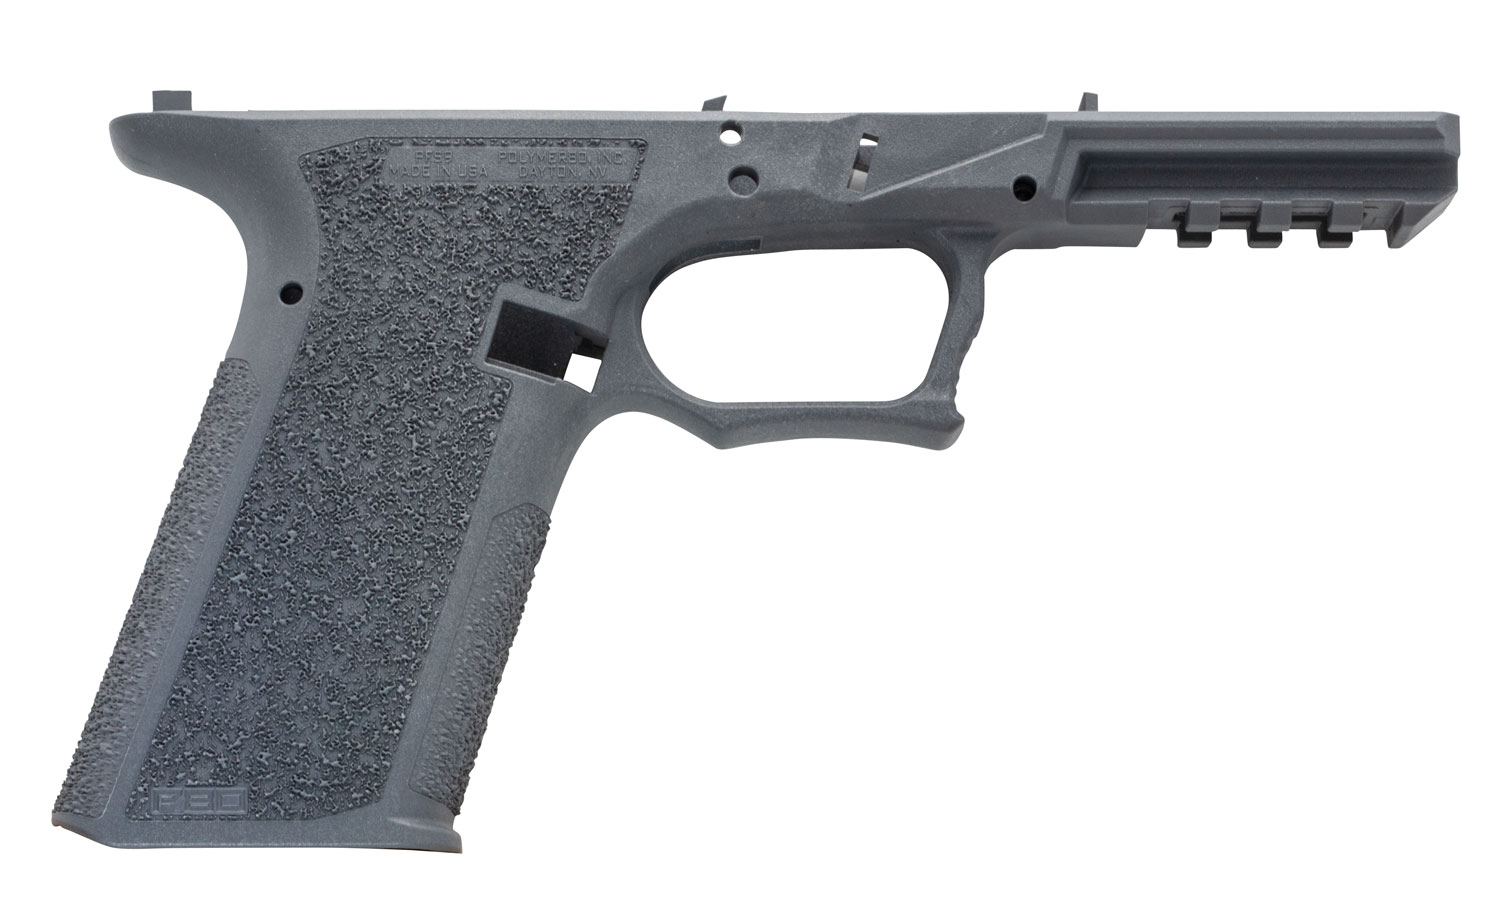 Polymer80 P80PFS9GRY G17/22 Gen3 Compatible 80% Pistol Frame Polymer Gray Serialized